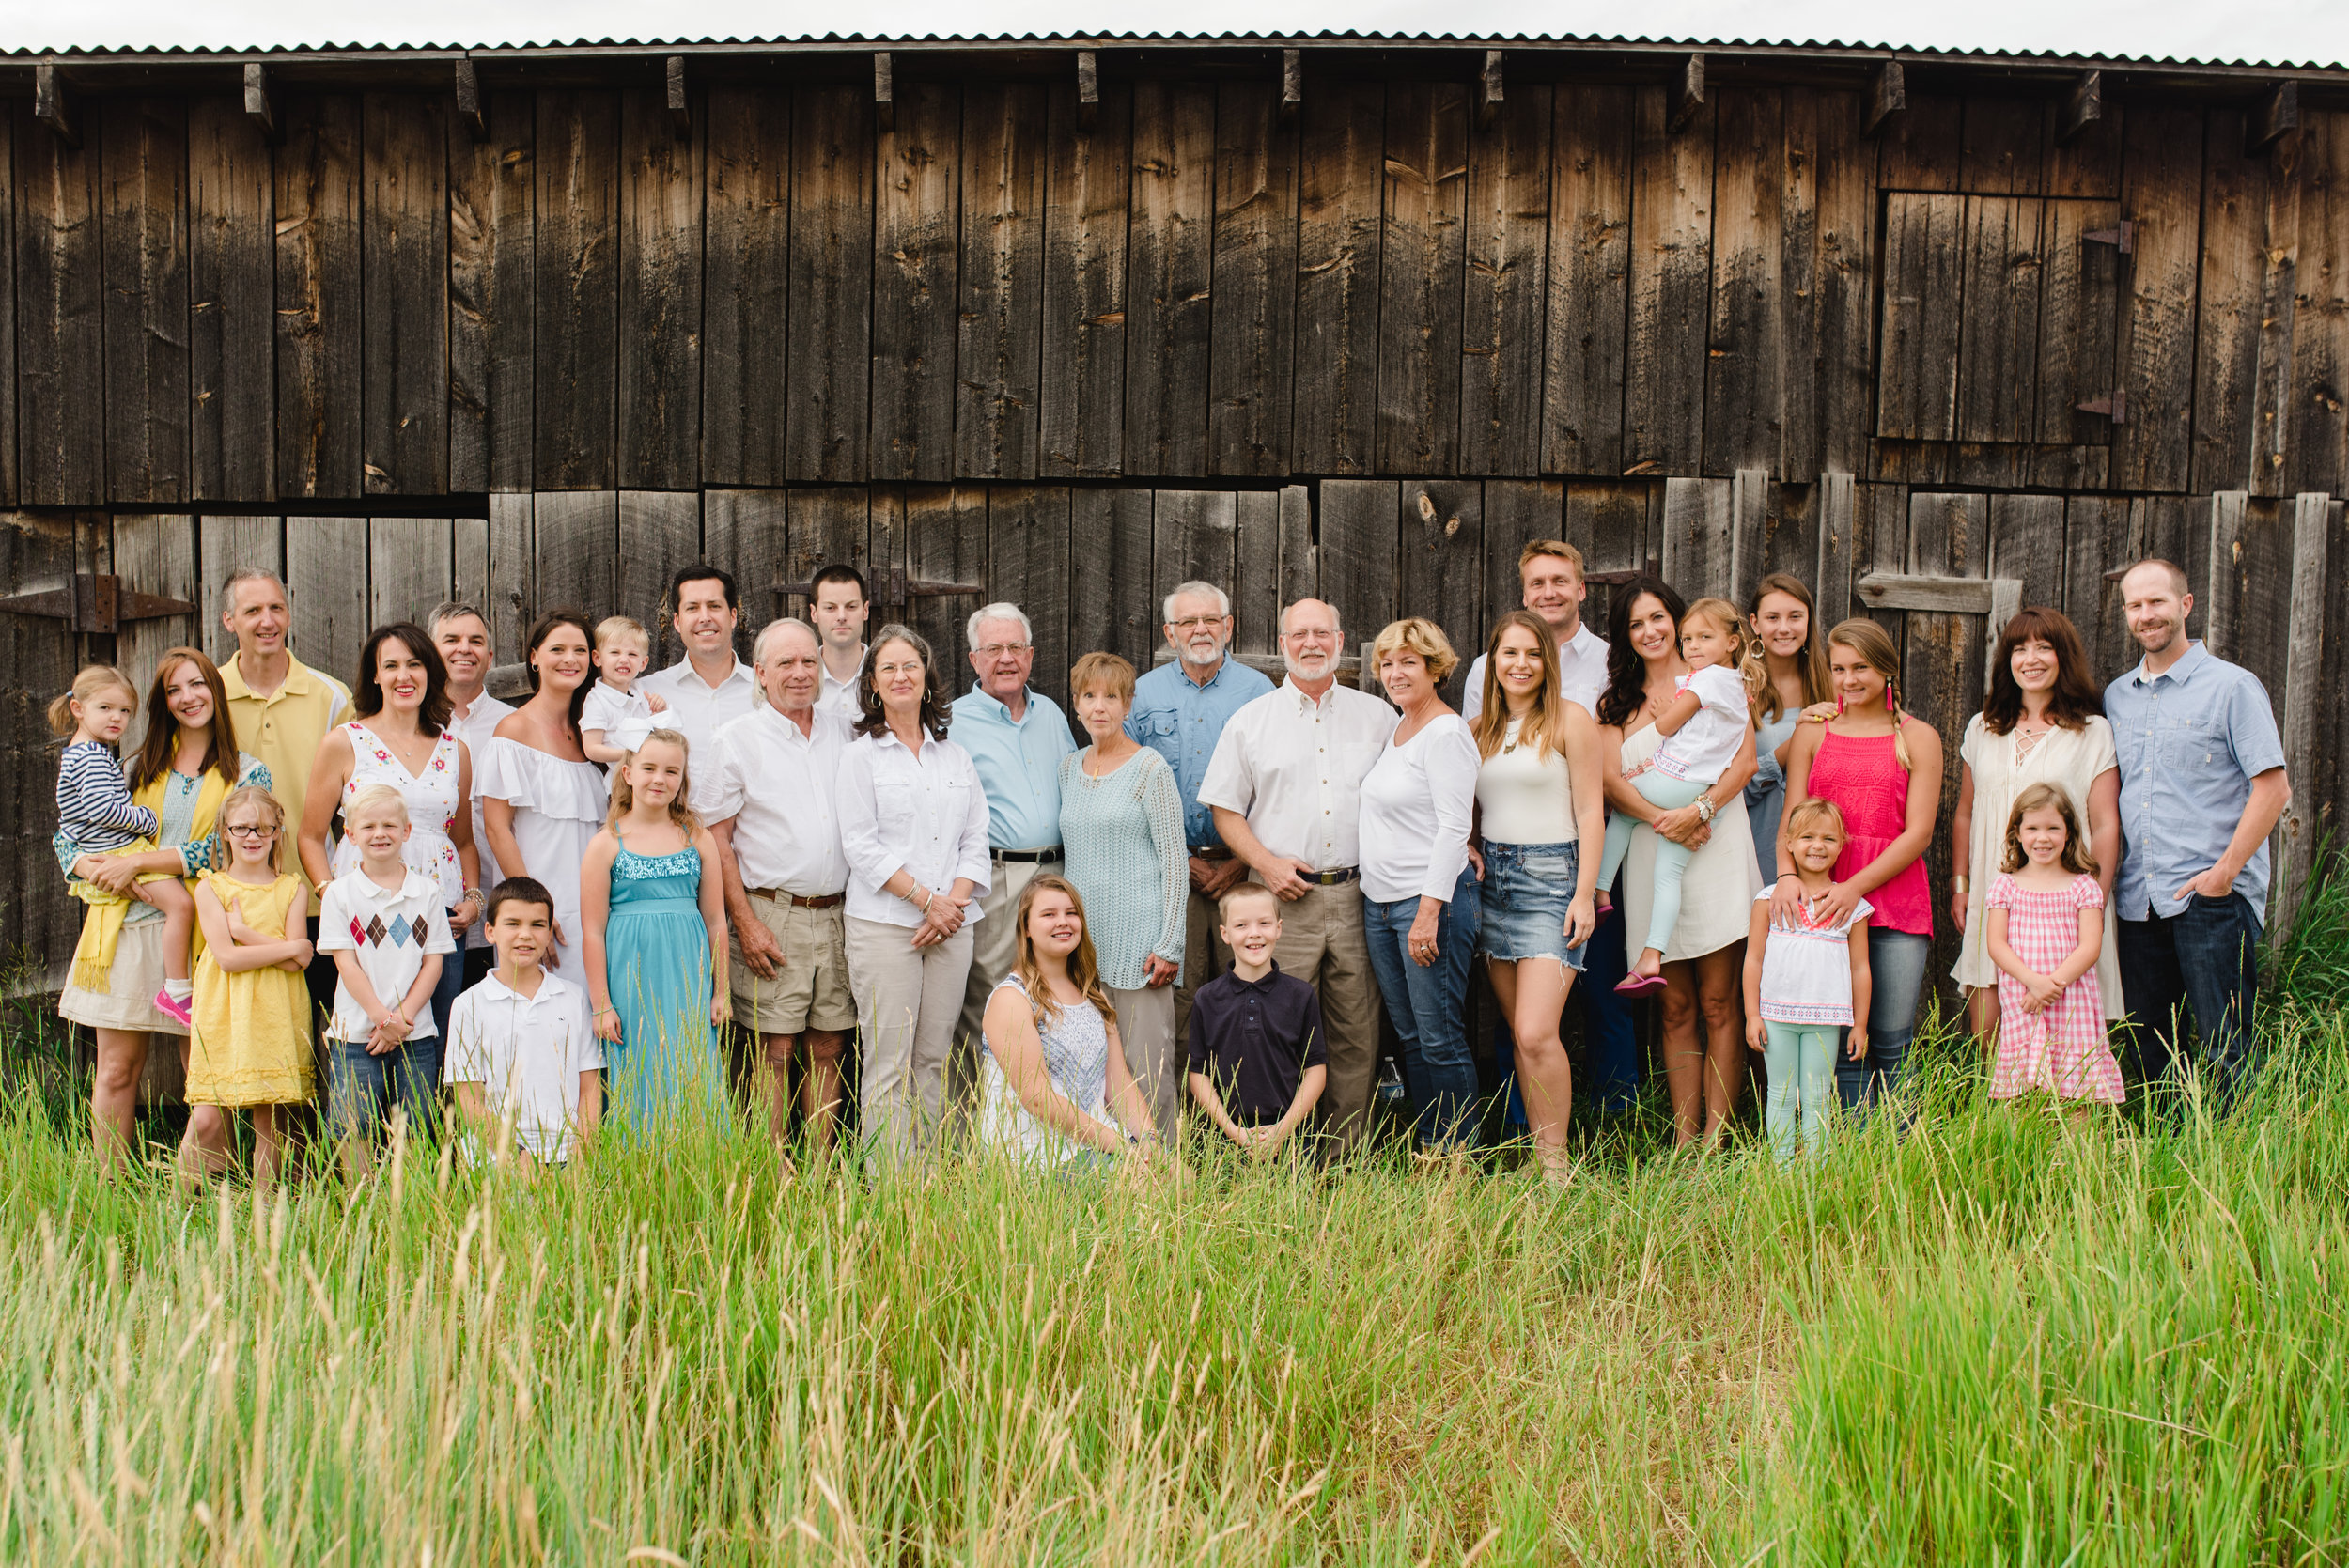 Soard_Family_Reunion179288.jpg